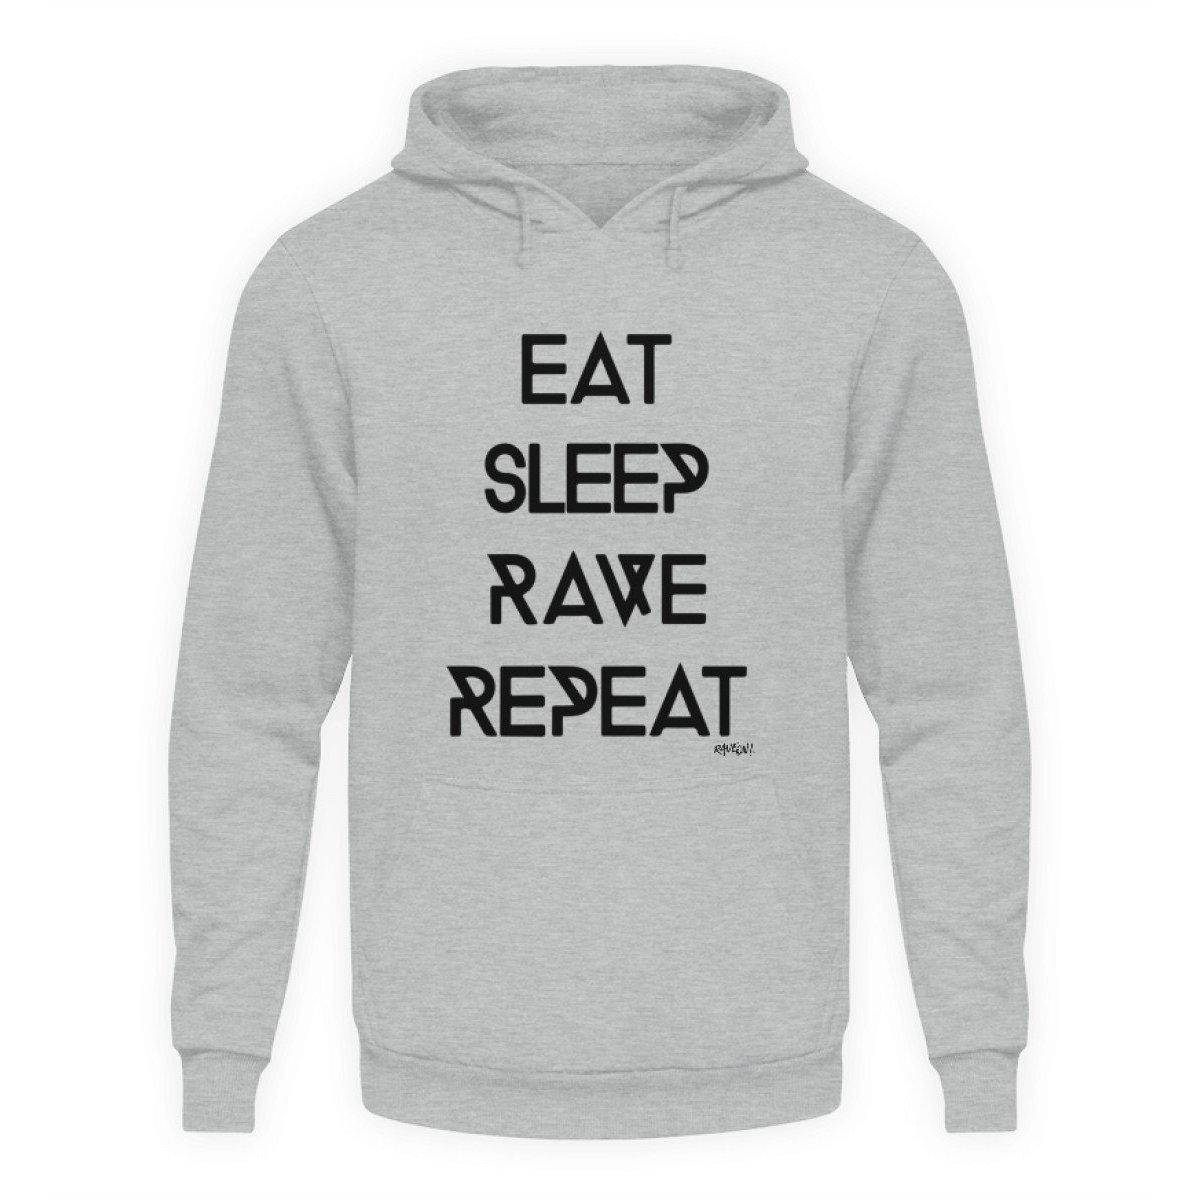 Eat Sleep Rave Repeat - Rave On!® - Unisex Kapuzenpullover Hoodie Unisex Hoodie Heather Sport Grey / L - Rave On!® der Club & Techno Szene Shop für Coole Junge Mode Streetwear Style & Fashion Outfits + Sexy Festival 420 Stuff